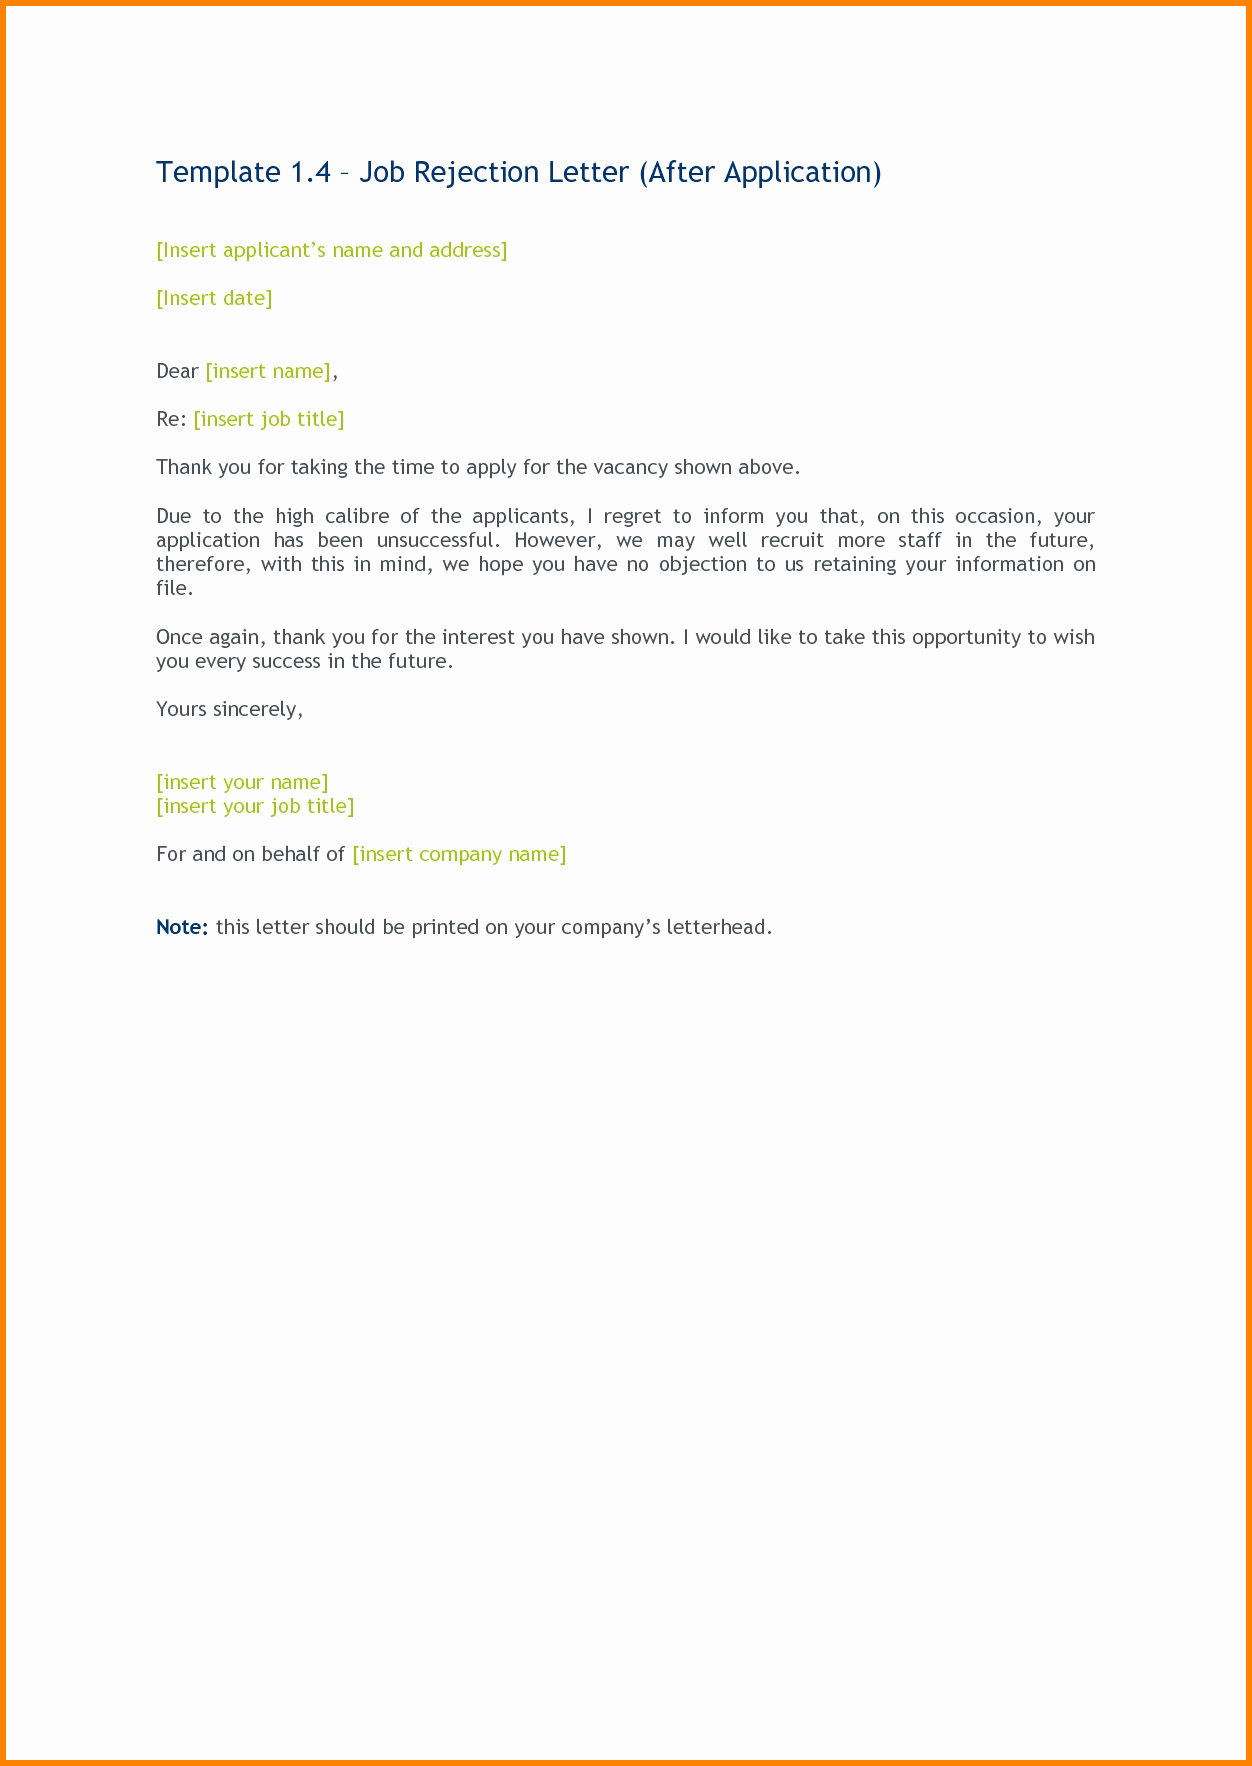 Job Rejection Email Template Elegant 5 Application Rejection Letter